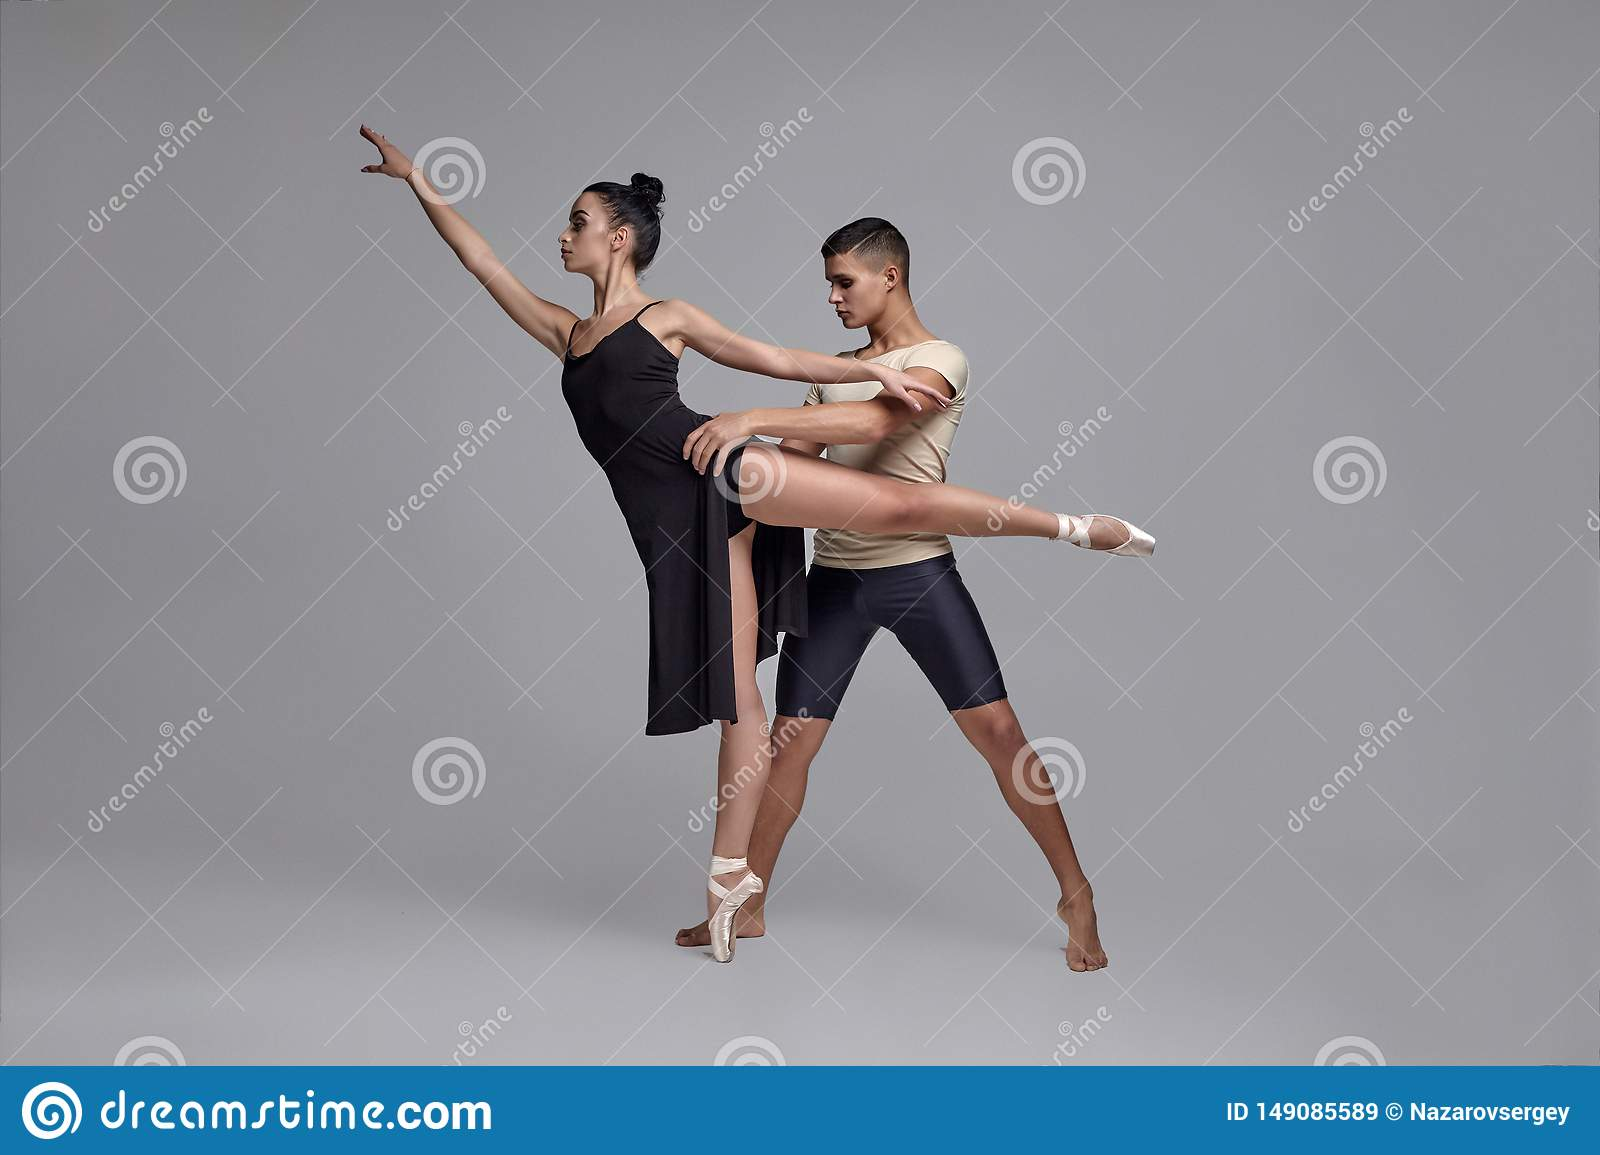 Two Athletic Modern Ballet Dancers Are Posing Against A Gray Studio  Background. Stock Image - Image of gorgeous, ballet: 149085589